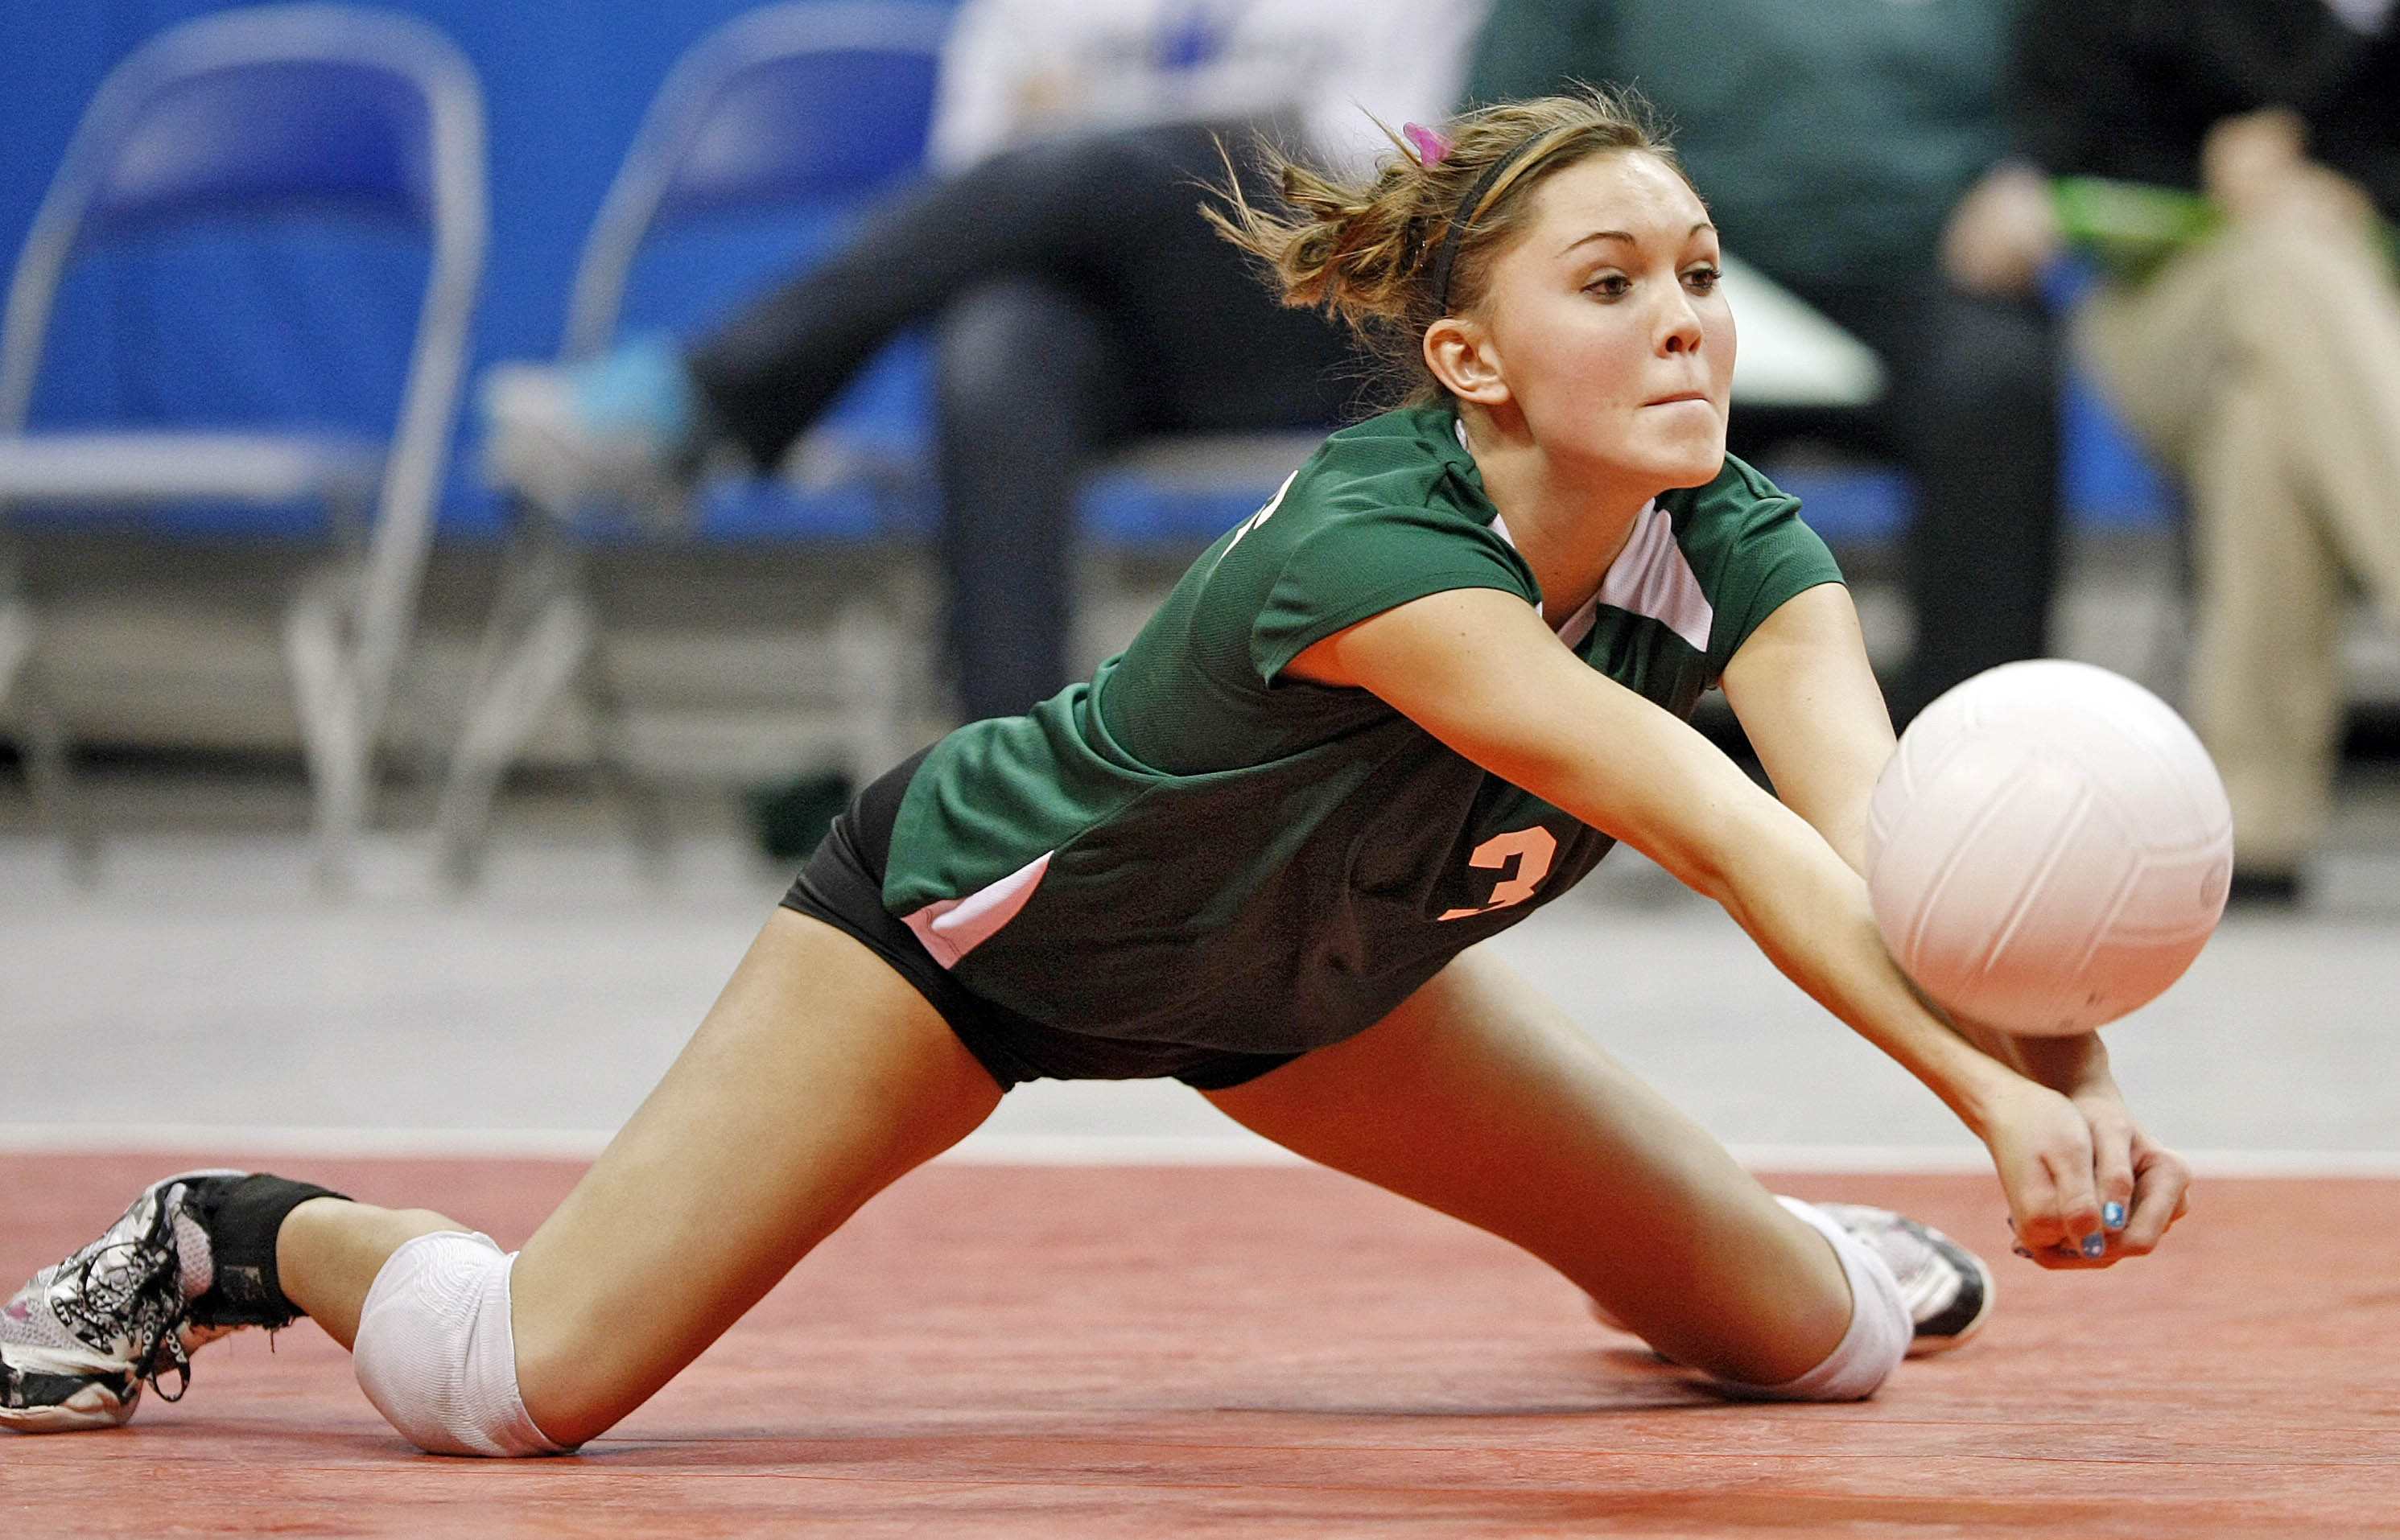 The Top 5 Reasons You Should Play Volleyball   thefiveminuteguide ...